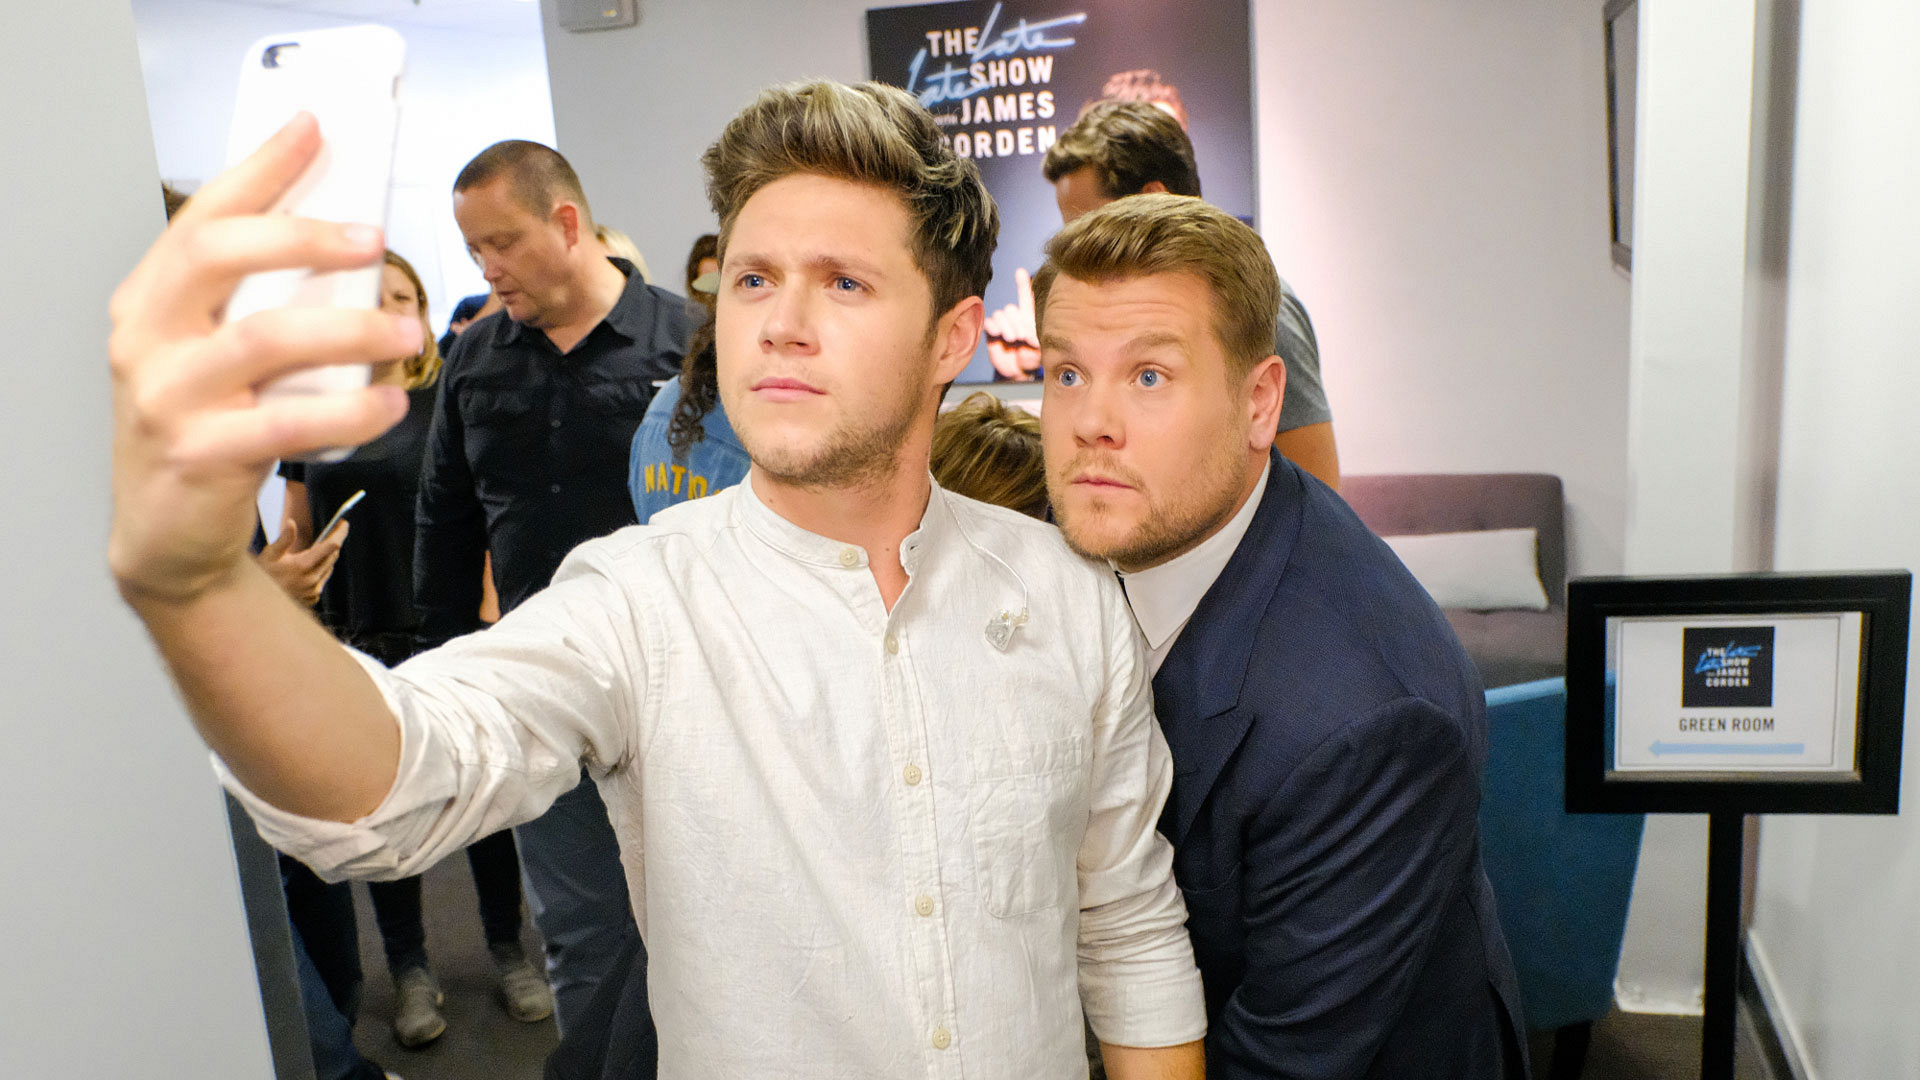 Niall snapped a selfie before his first solo appearance on the show.